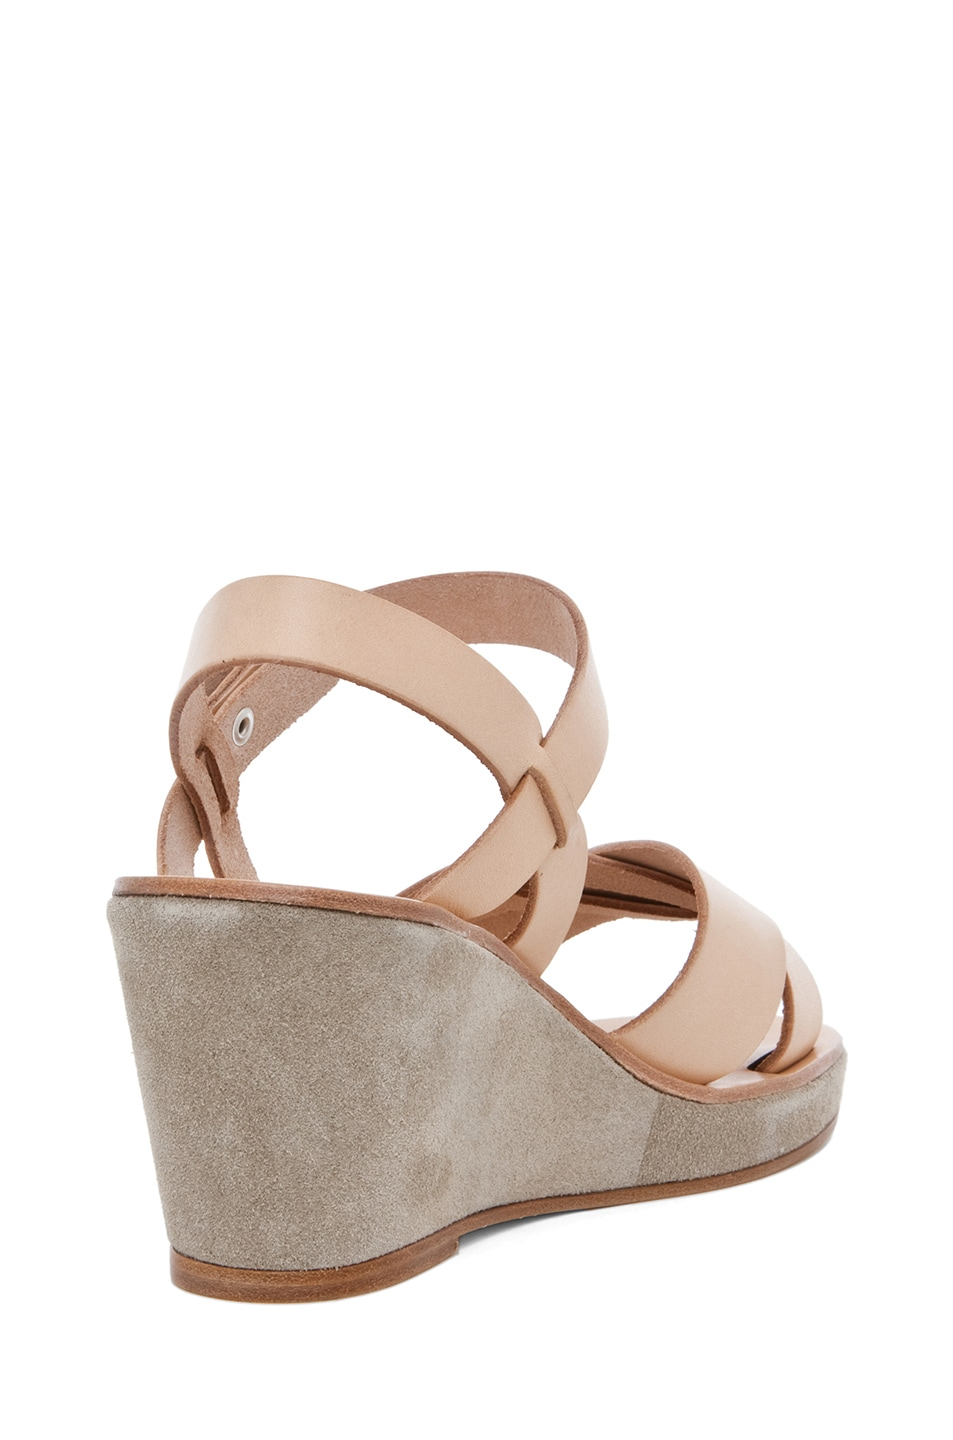 Image 3 of A.P.C. Criss Cros Wedge Sandal in Beige Naturel